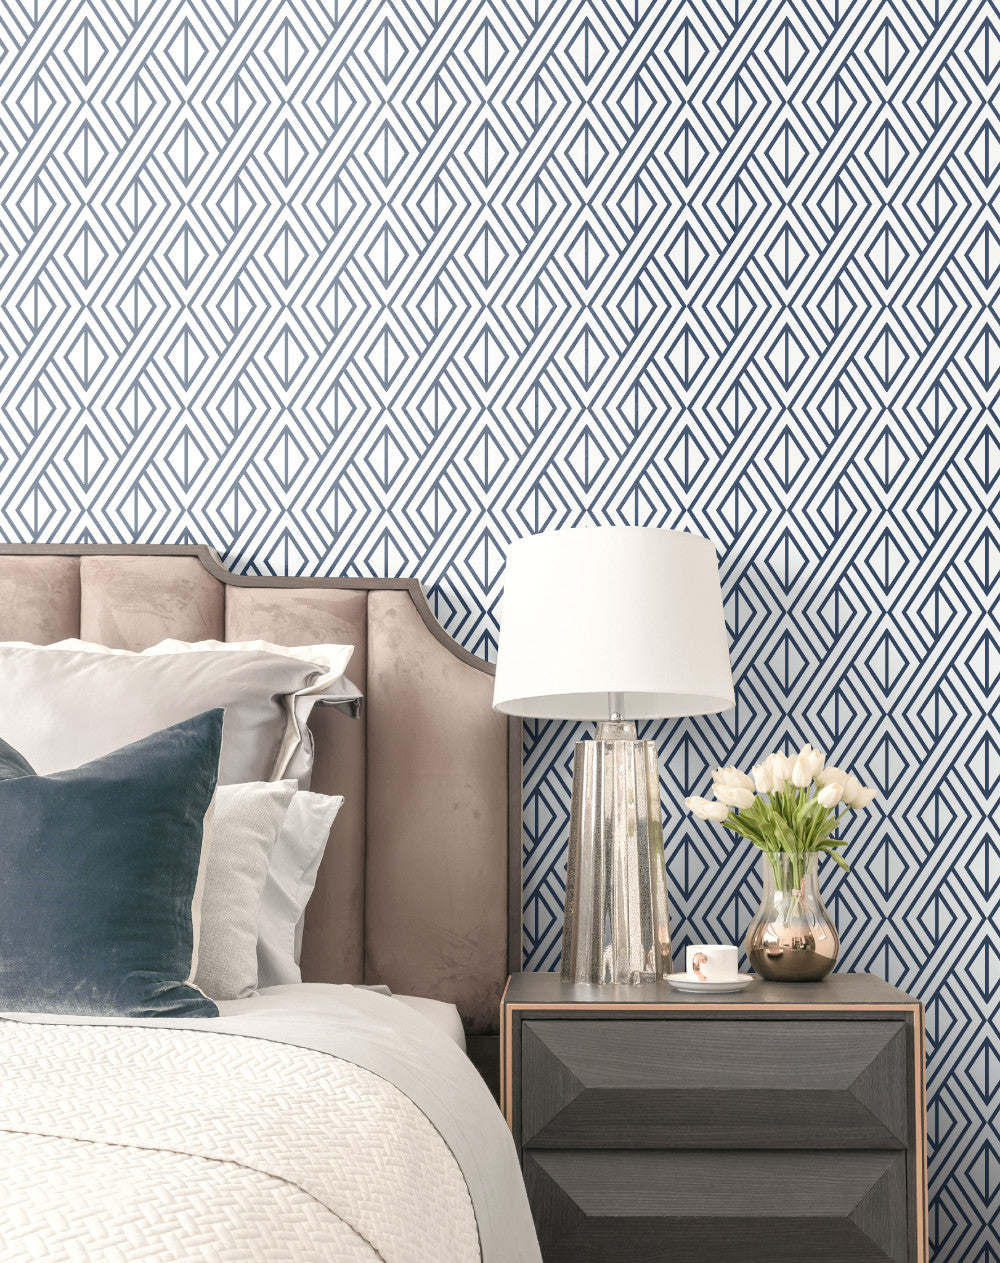 Geometric pattern removable wallpaper Navy and Beige wall mural Peel and stick